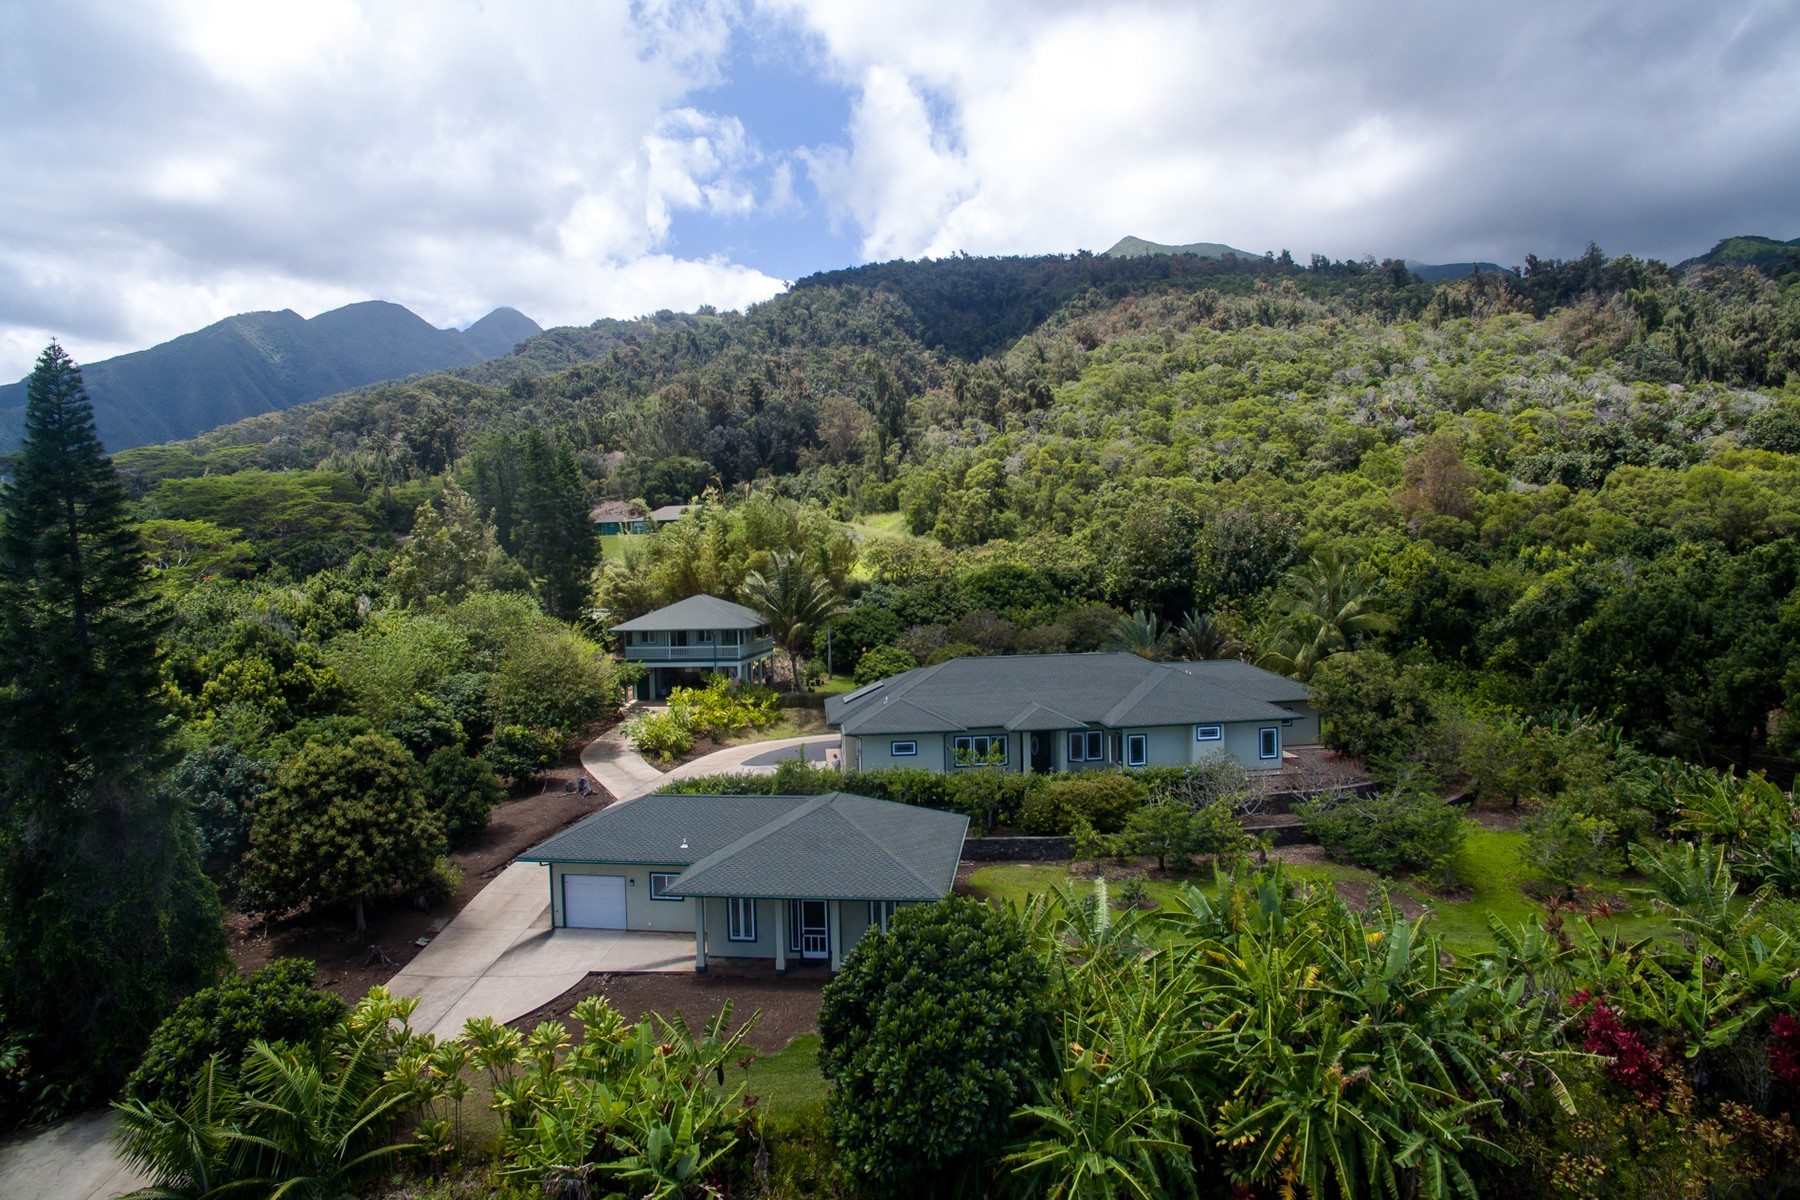 獨棟家庭住宅 為 出售 在 Transcendent 2 Acre Wailuku Country Estate Compound 2392 Kamaile Street, 152 Wailuku, 夏威夷, 96793 美國